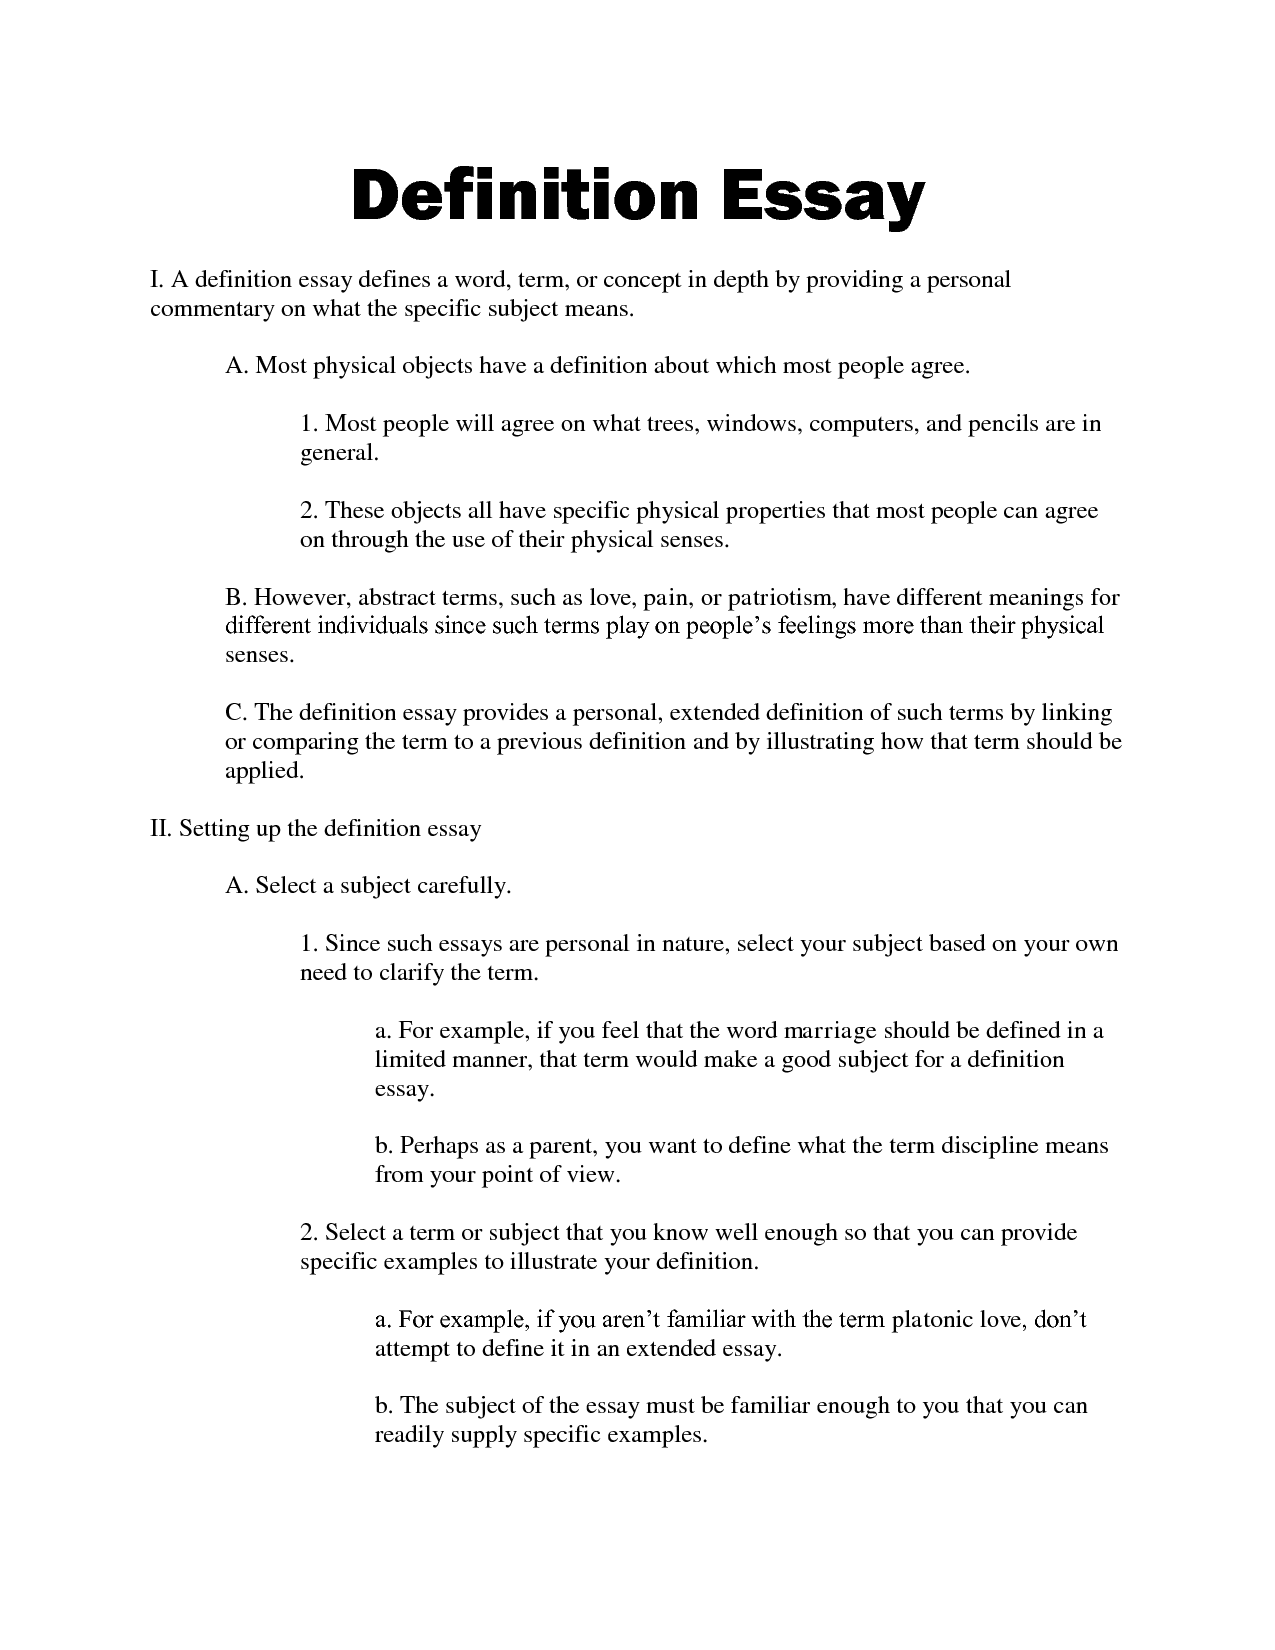 003 Gj60o8orim Essay Example Of Incredible Definition About Love Success Beauty Full